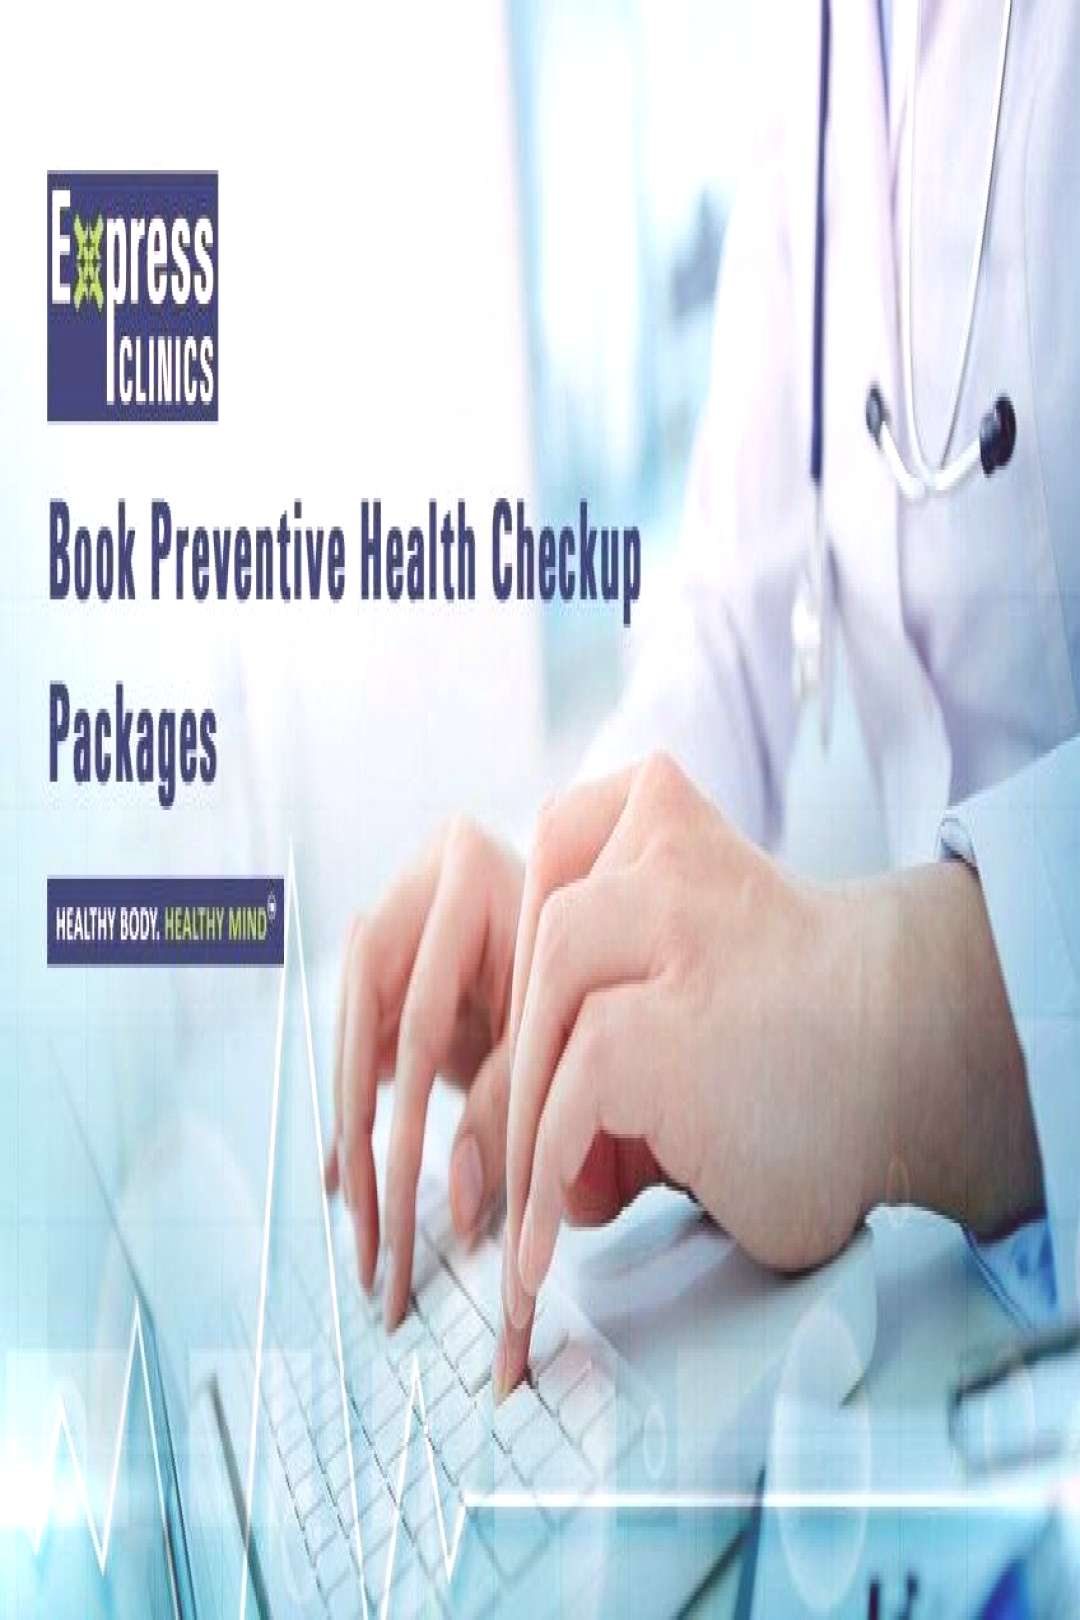 Express Clinics is providing preventive health checkup package in Pune, Delhi, and Bangalore.